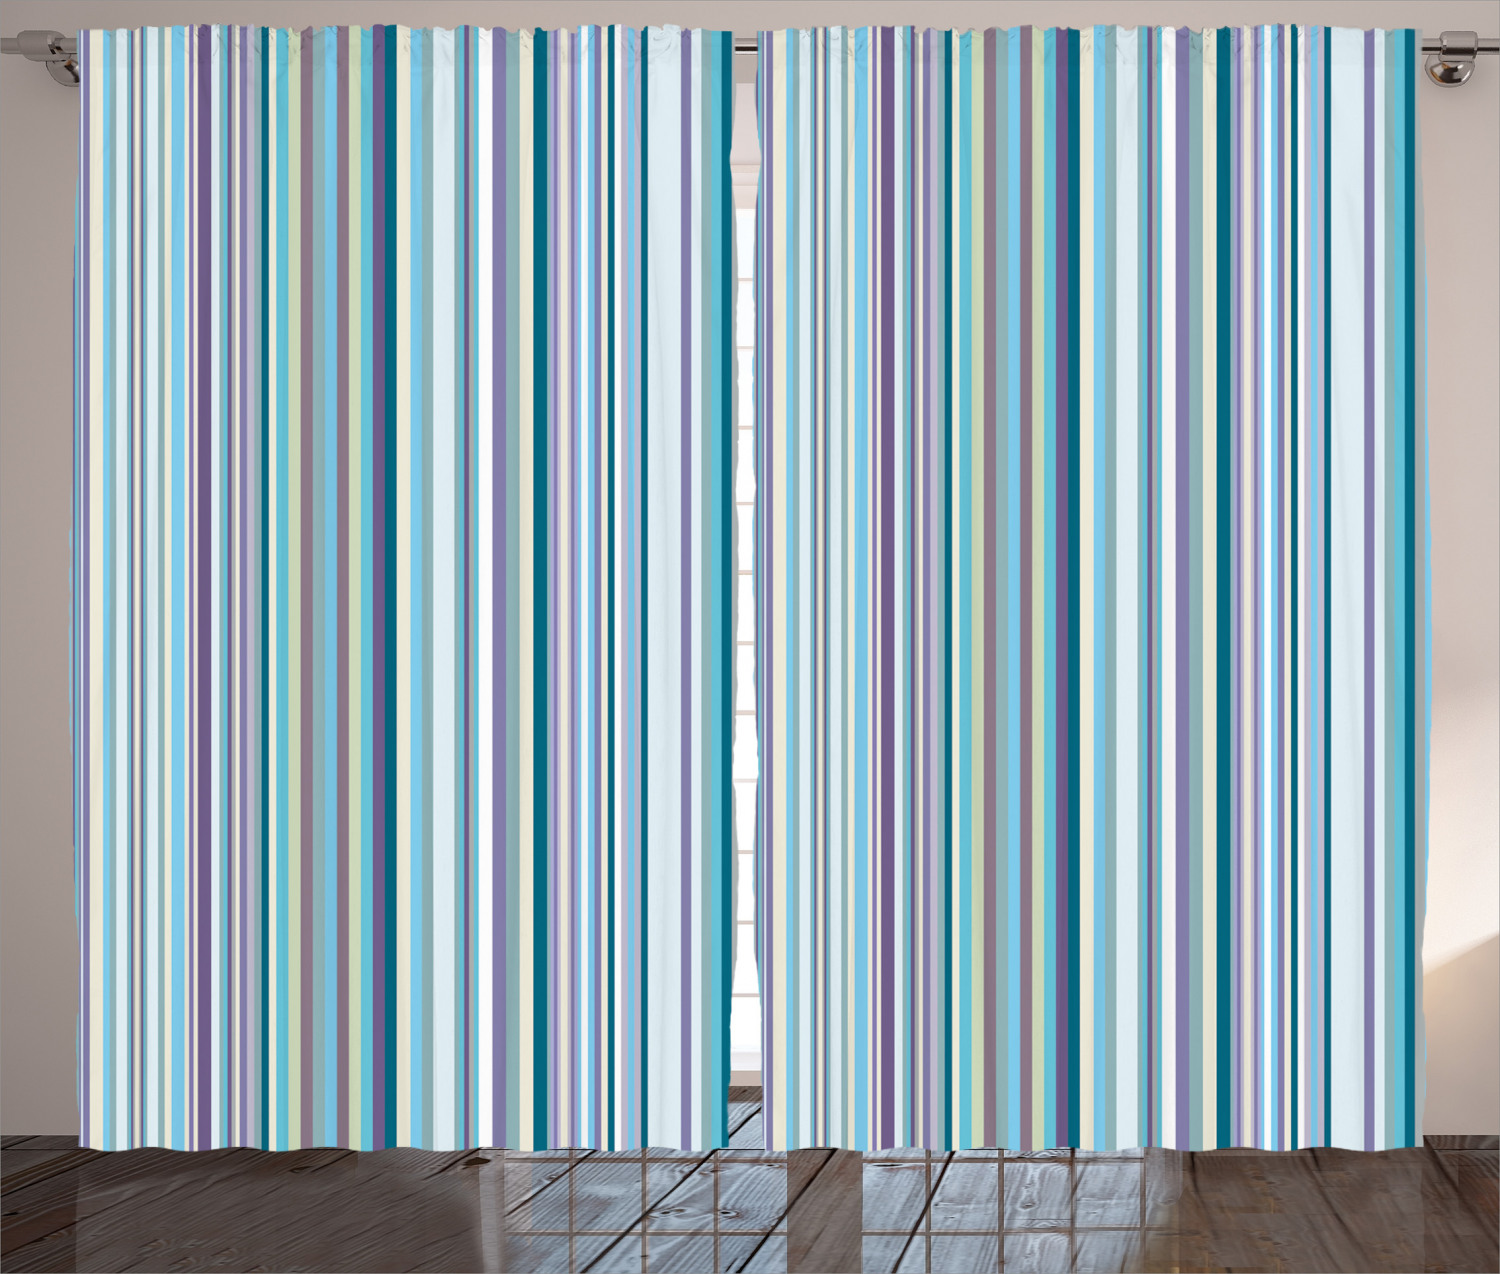 striped curtains 2 panels set blue purple teal aqua lavender colored vertical stripes geometric abstract vintage window drapes for living room